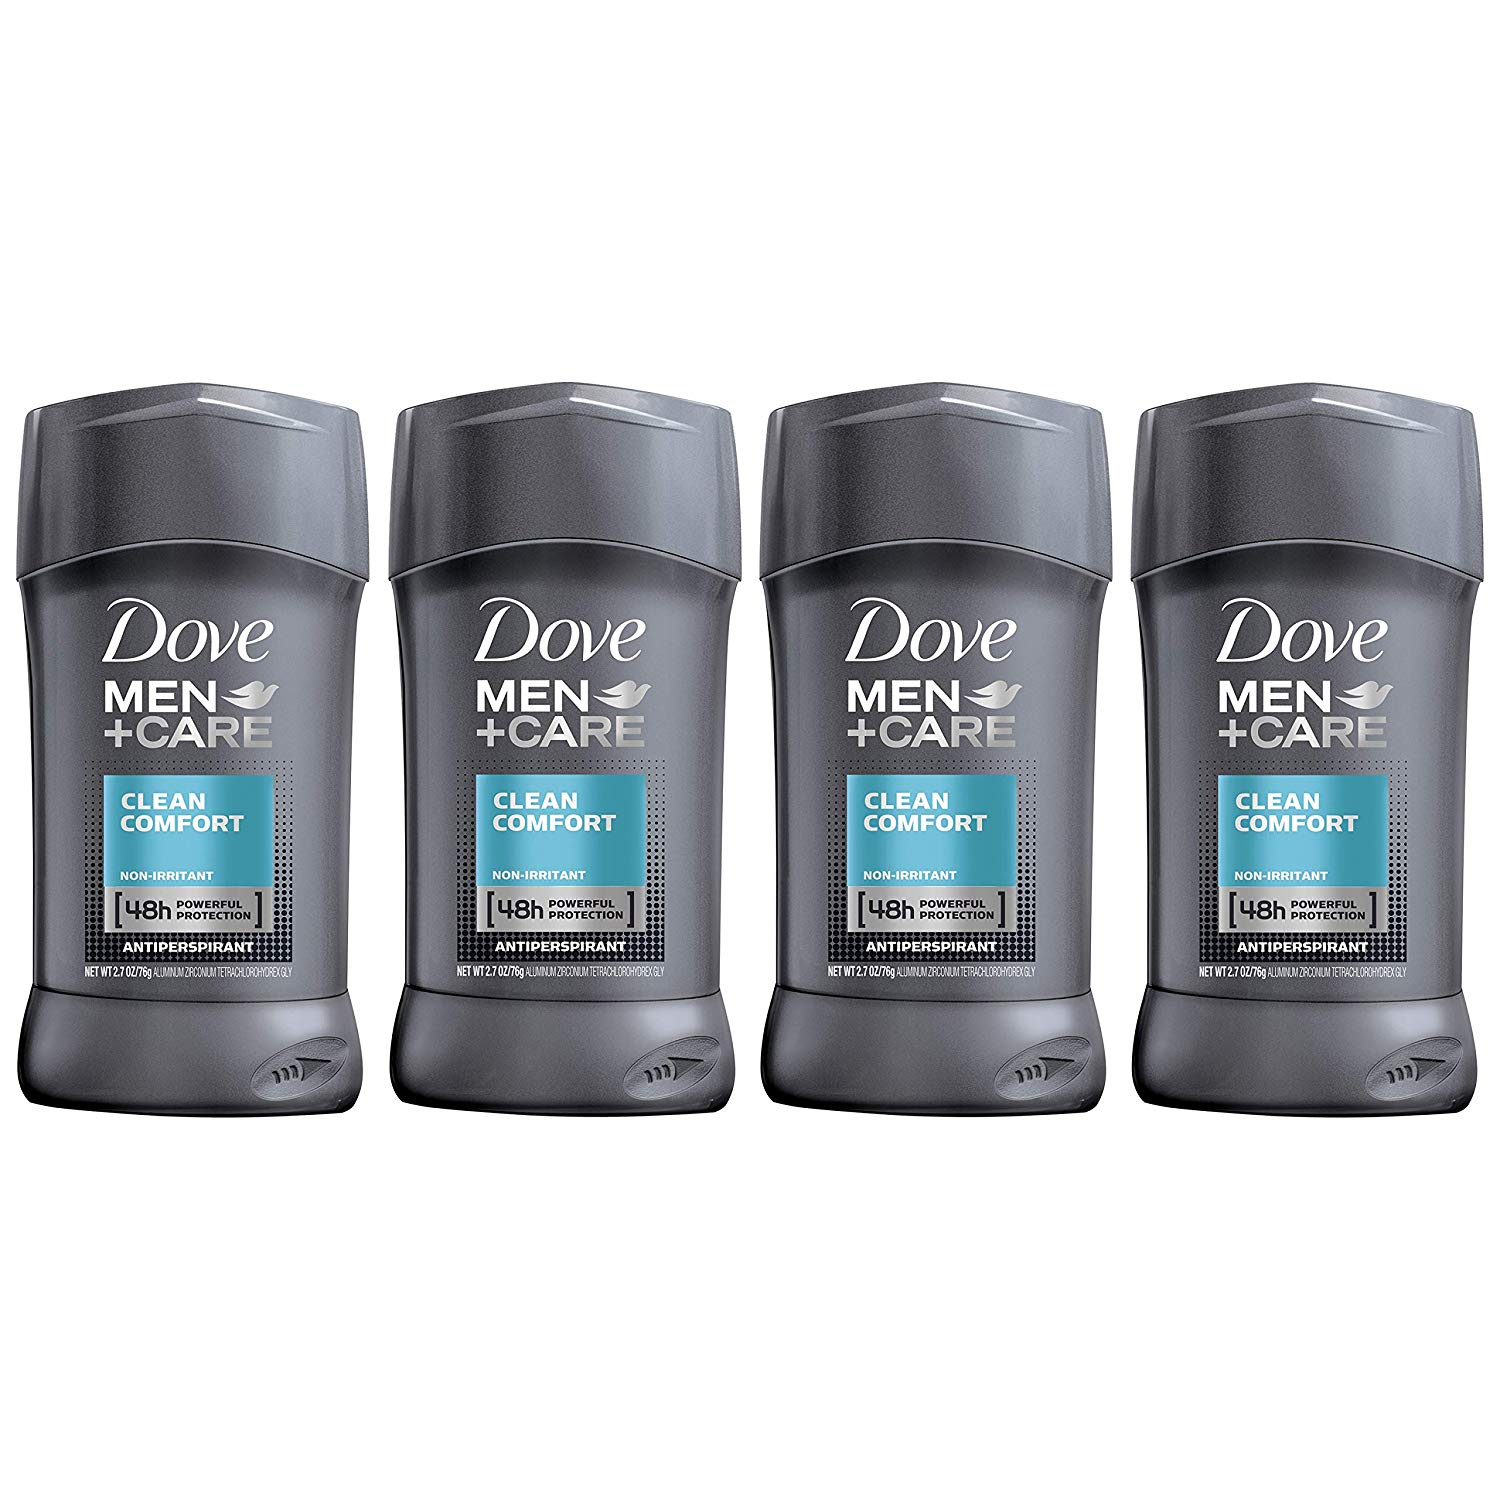 4 Pack Dove Men+Care Antiperspirant Deodorant Stick only $9.36 with coupon! (was $15.12)